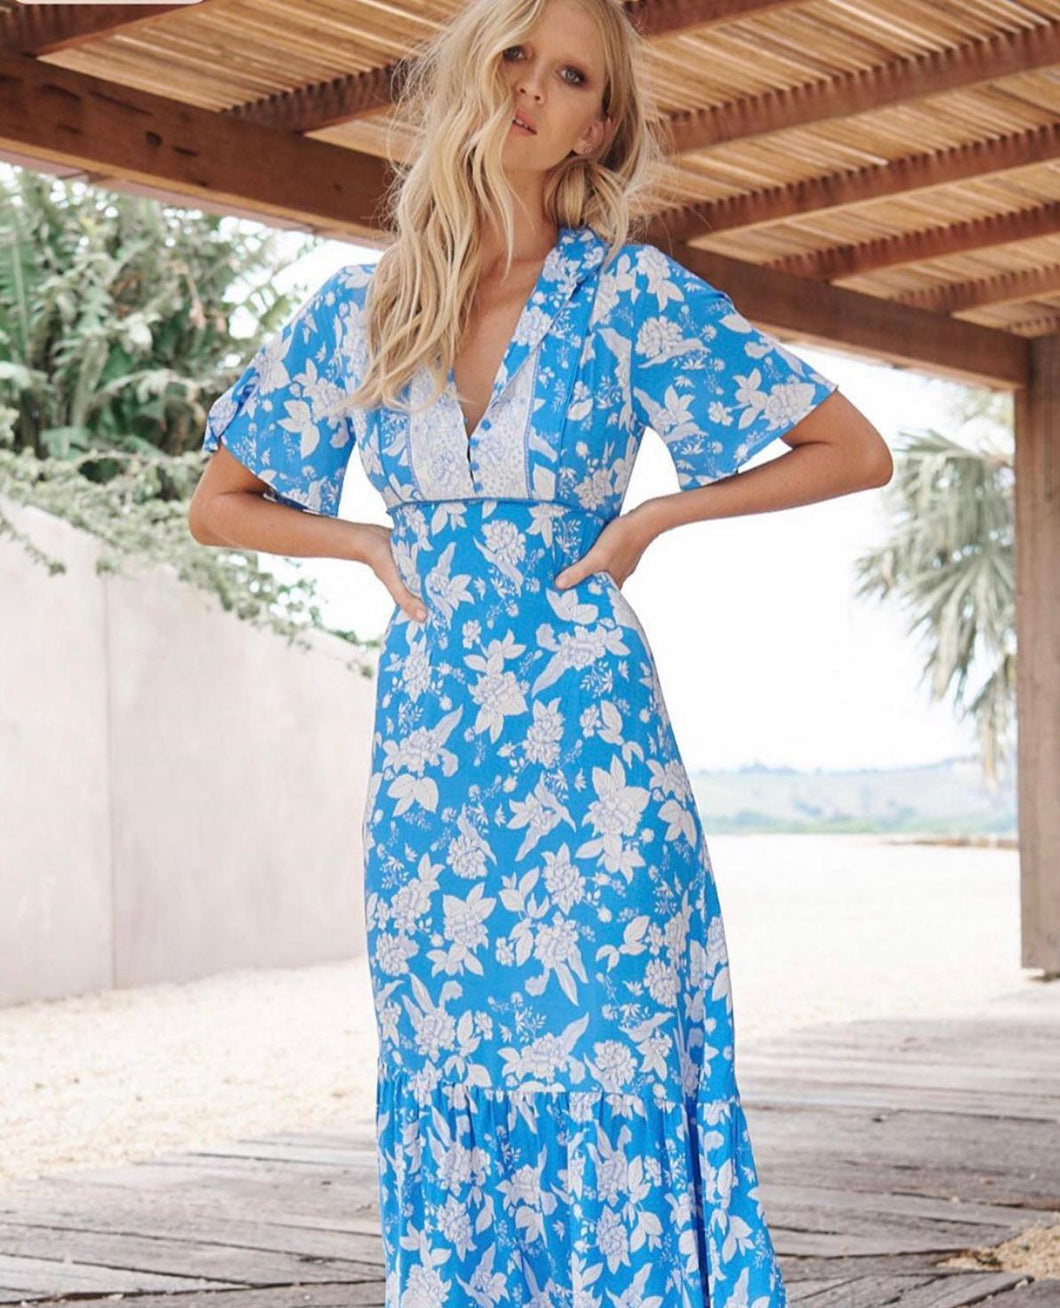 Jaase Riviera Blue & White Floral Dress